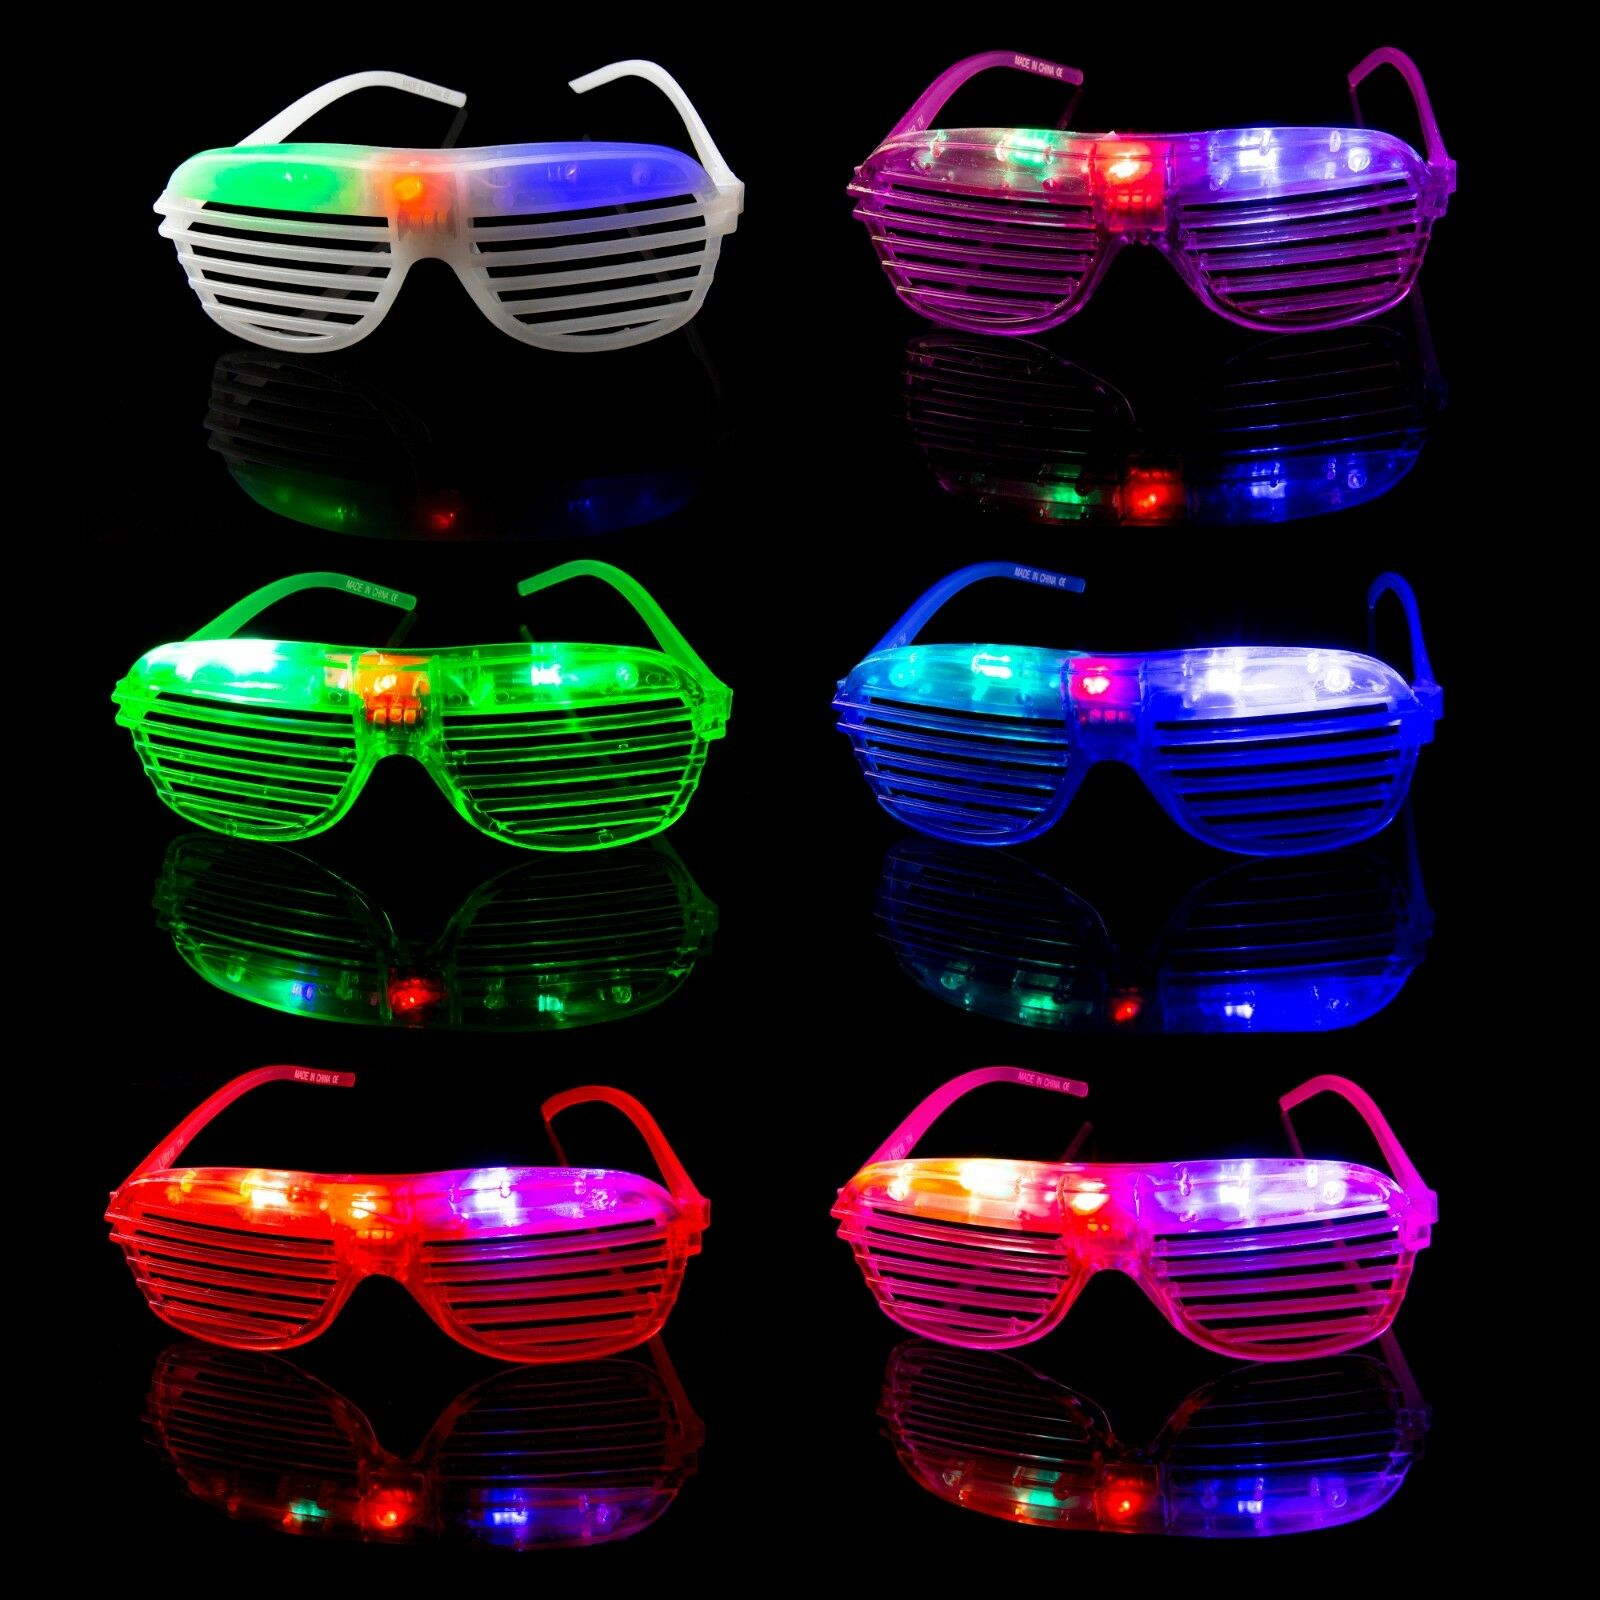 b795c895bef 1 - 96 Flashing LED Shutter Glasses Light Up Slotted Party Glow Shades  Wholesale